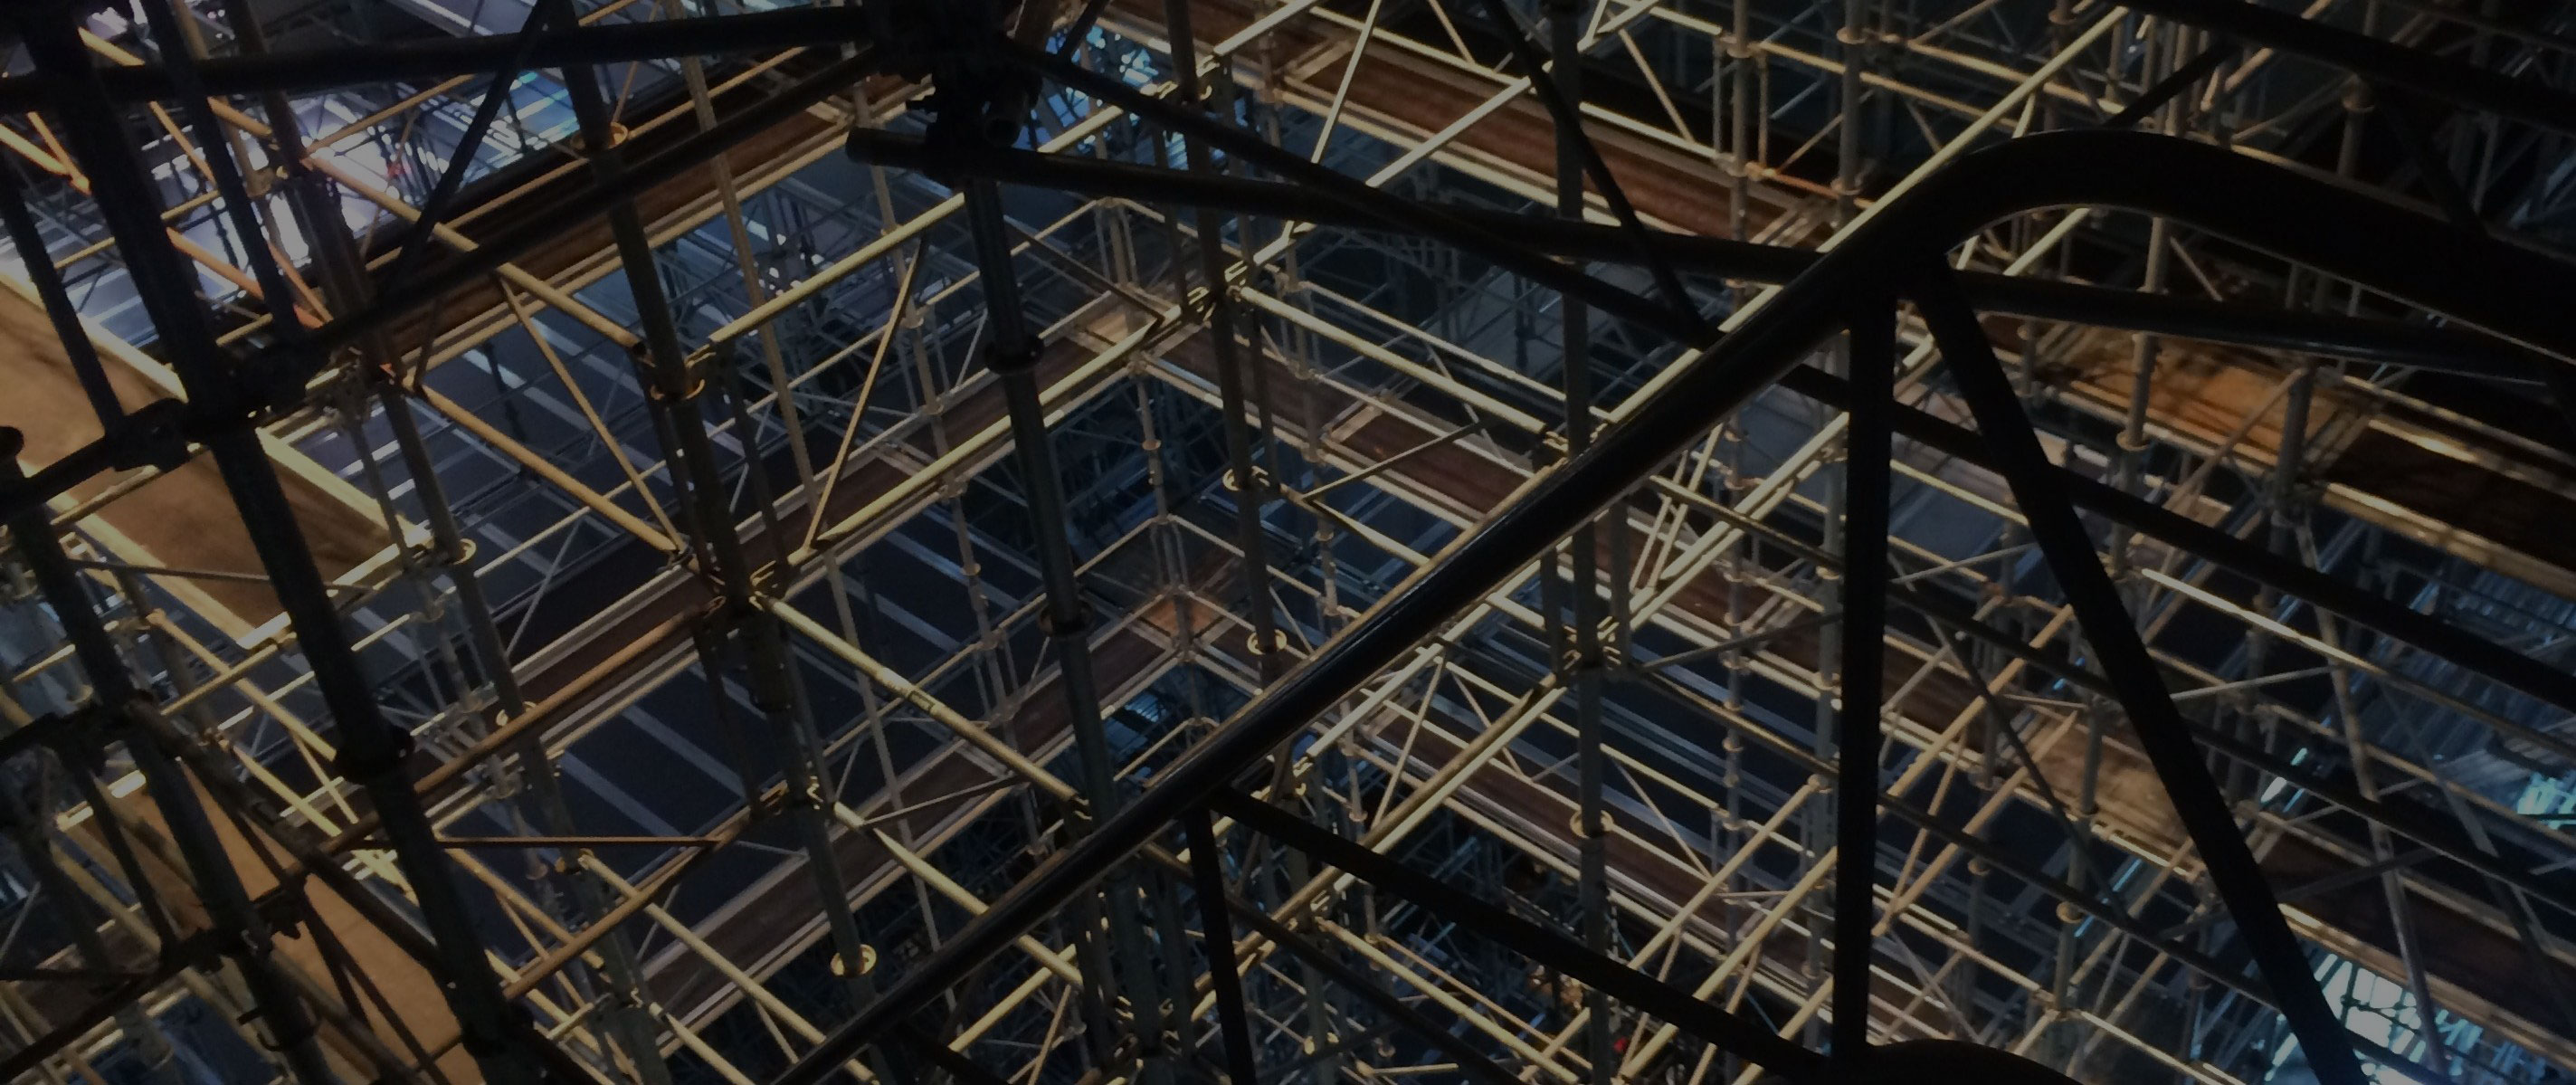 Complex scaffoling network inside a building